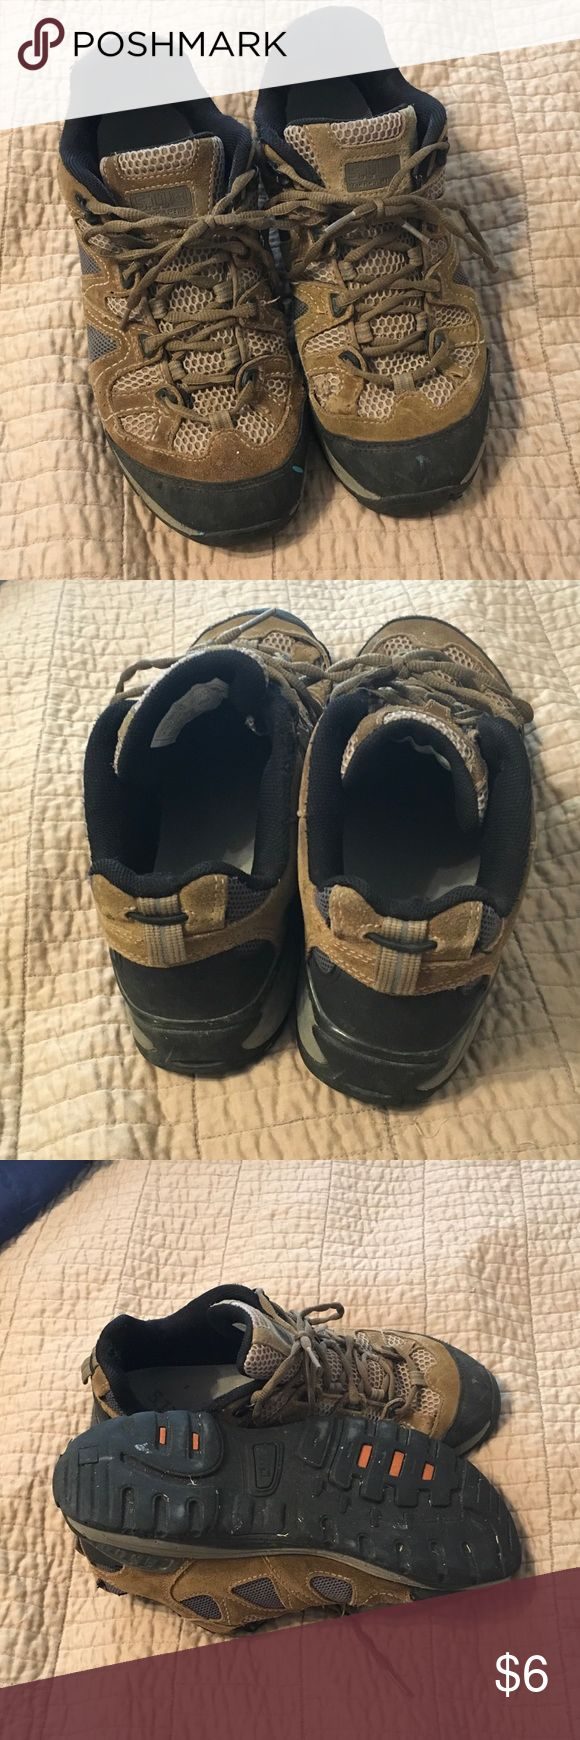 Hiking boots Men's size 10, some wear as pictured, price reflects 511 Shoes Boots